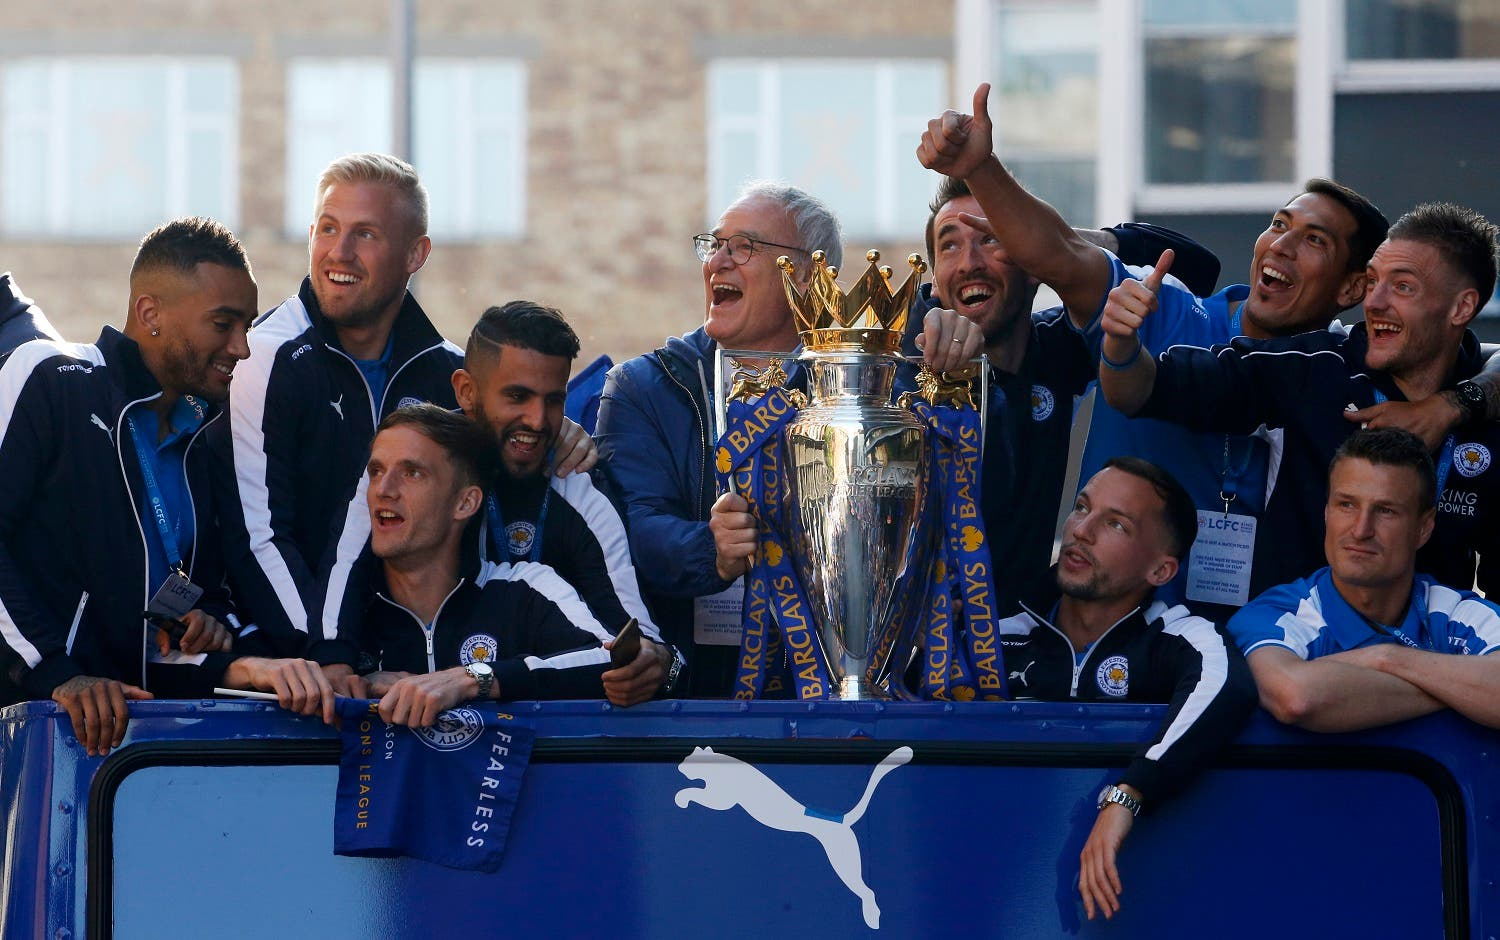 Leicester City manager Claudio Ranieri, Danny Simpson, Kasper Schmeichel, Riyad Mahrez, Andy King, Christian Fuchs, Danny Drinkwater, Leonardo Ulloa, Robert Huth and Jamie Vardy with the trophy on the bus during the parade. (Reuters)